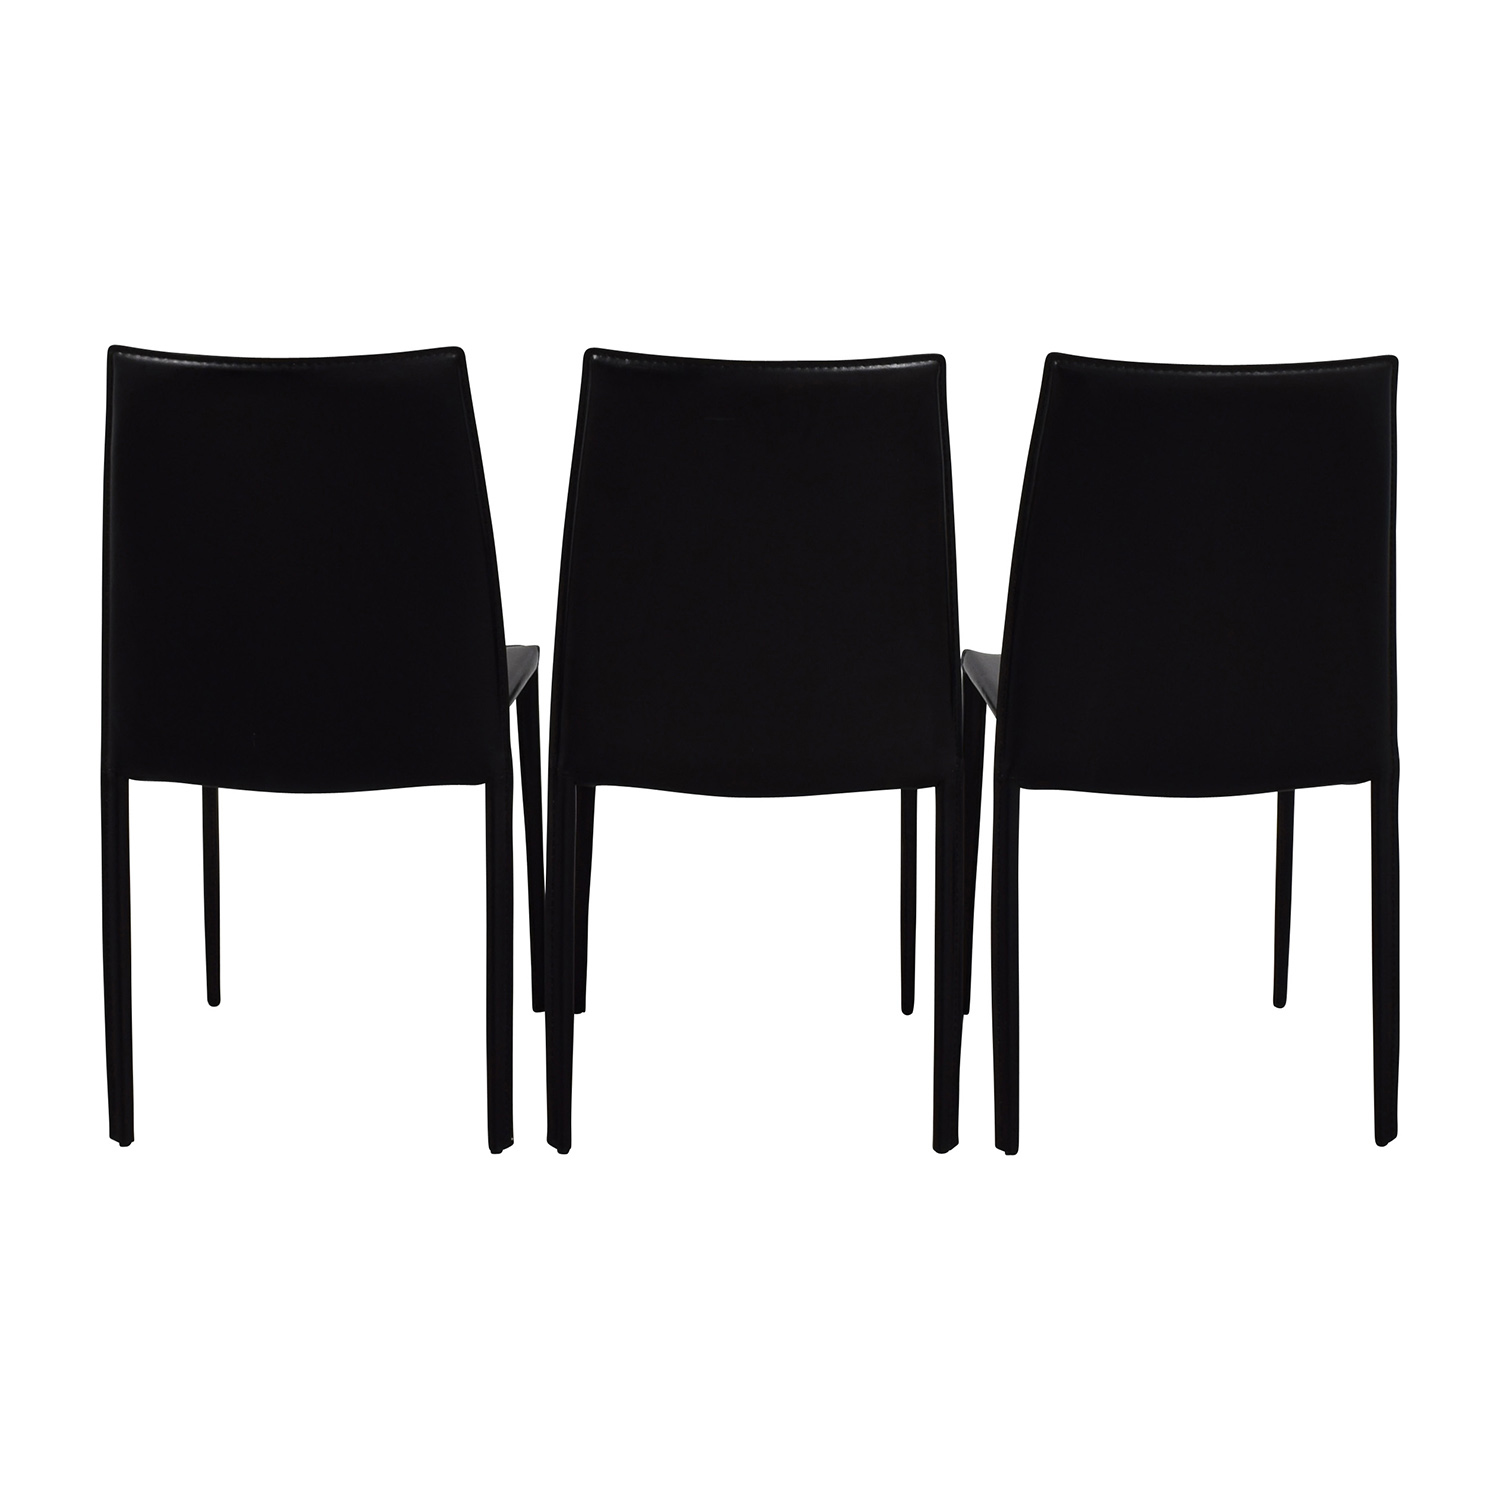 InMod InMod Manta Black Leather Stacking Chairs Stools